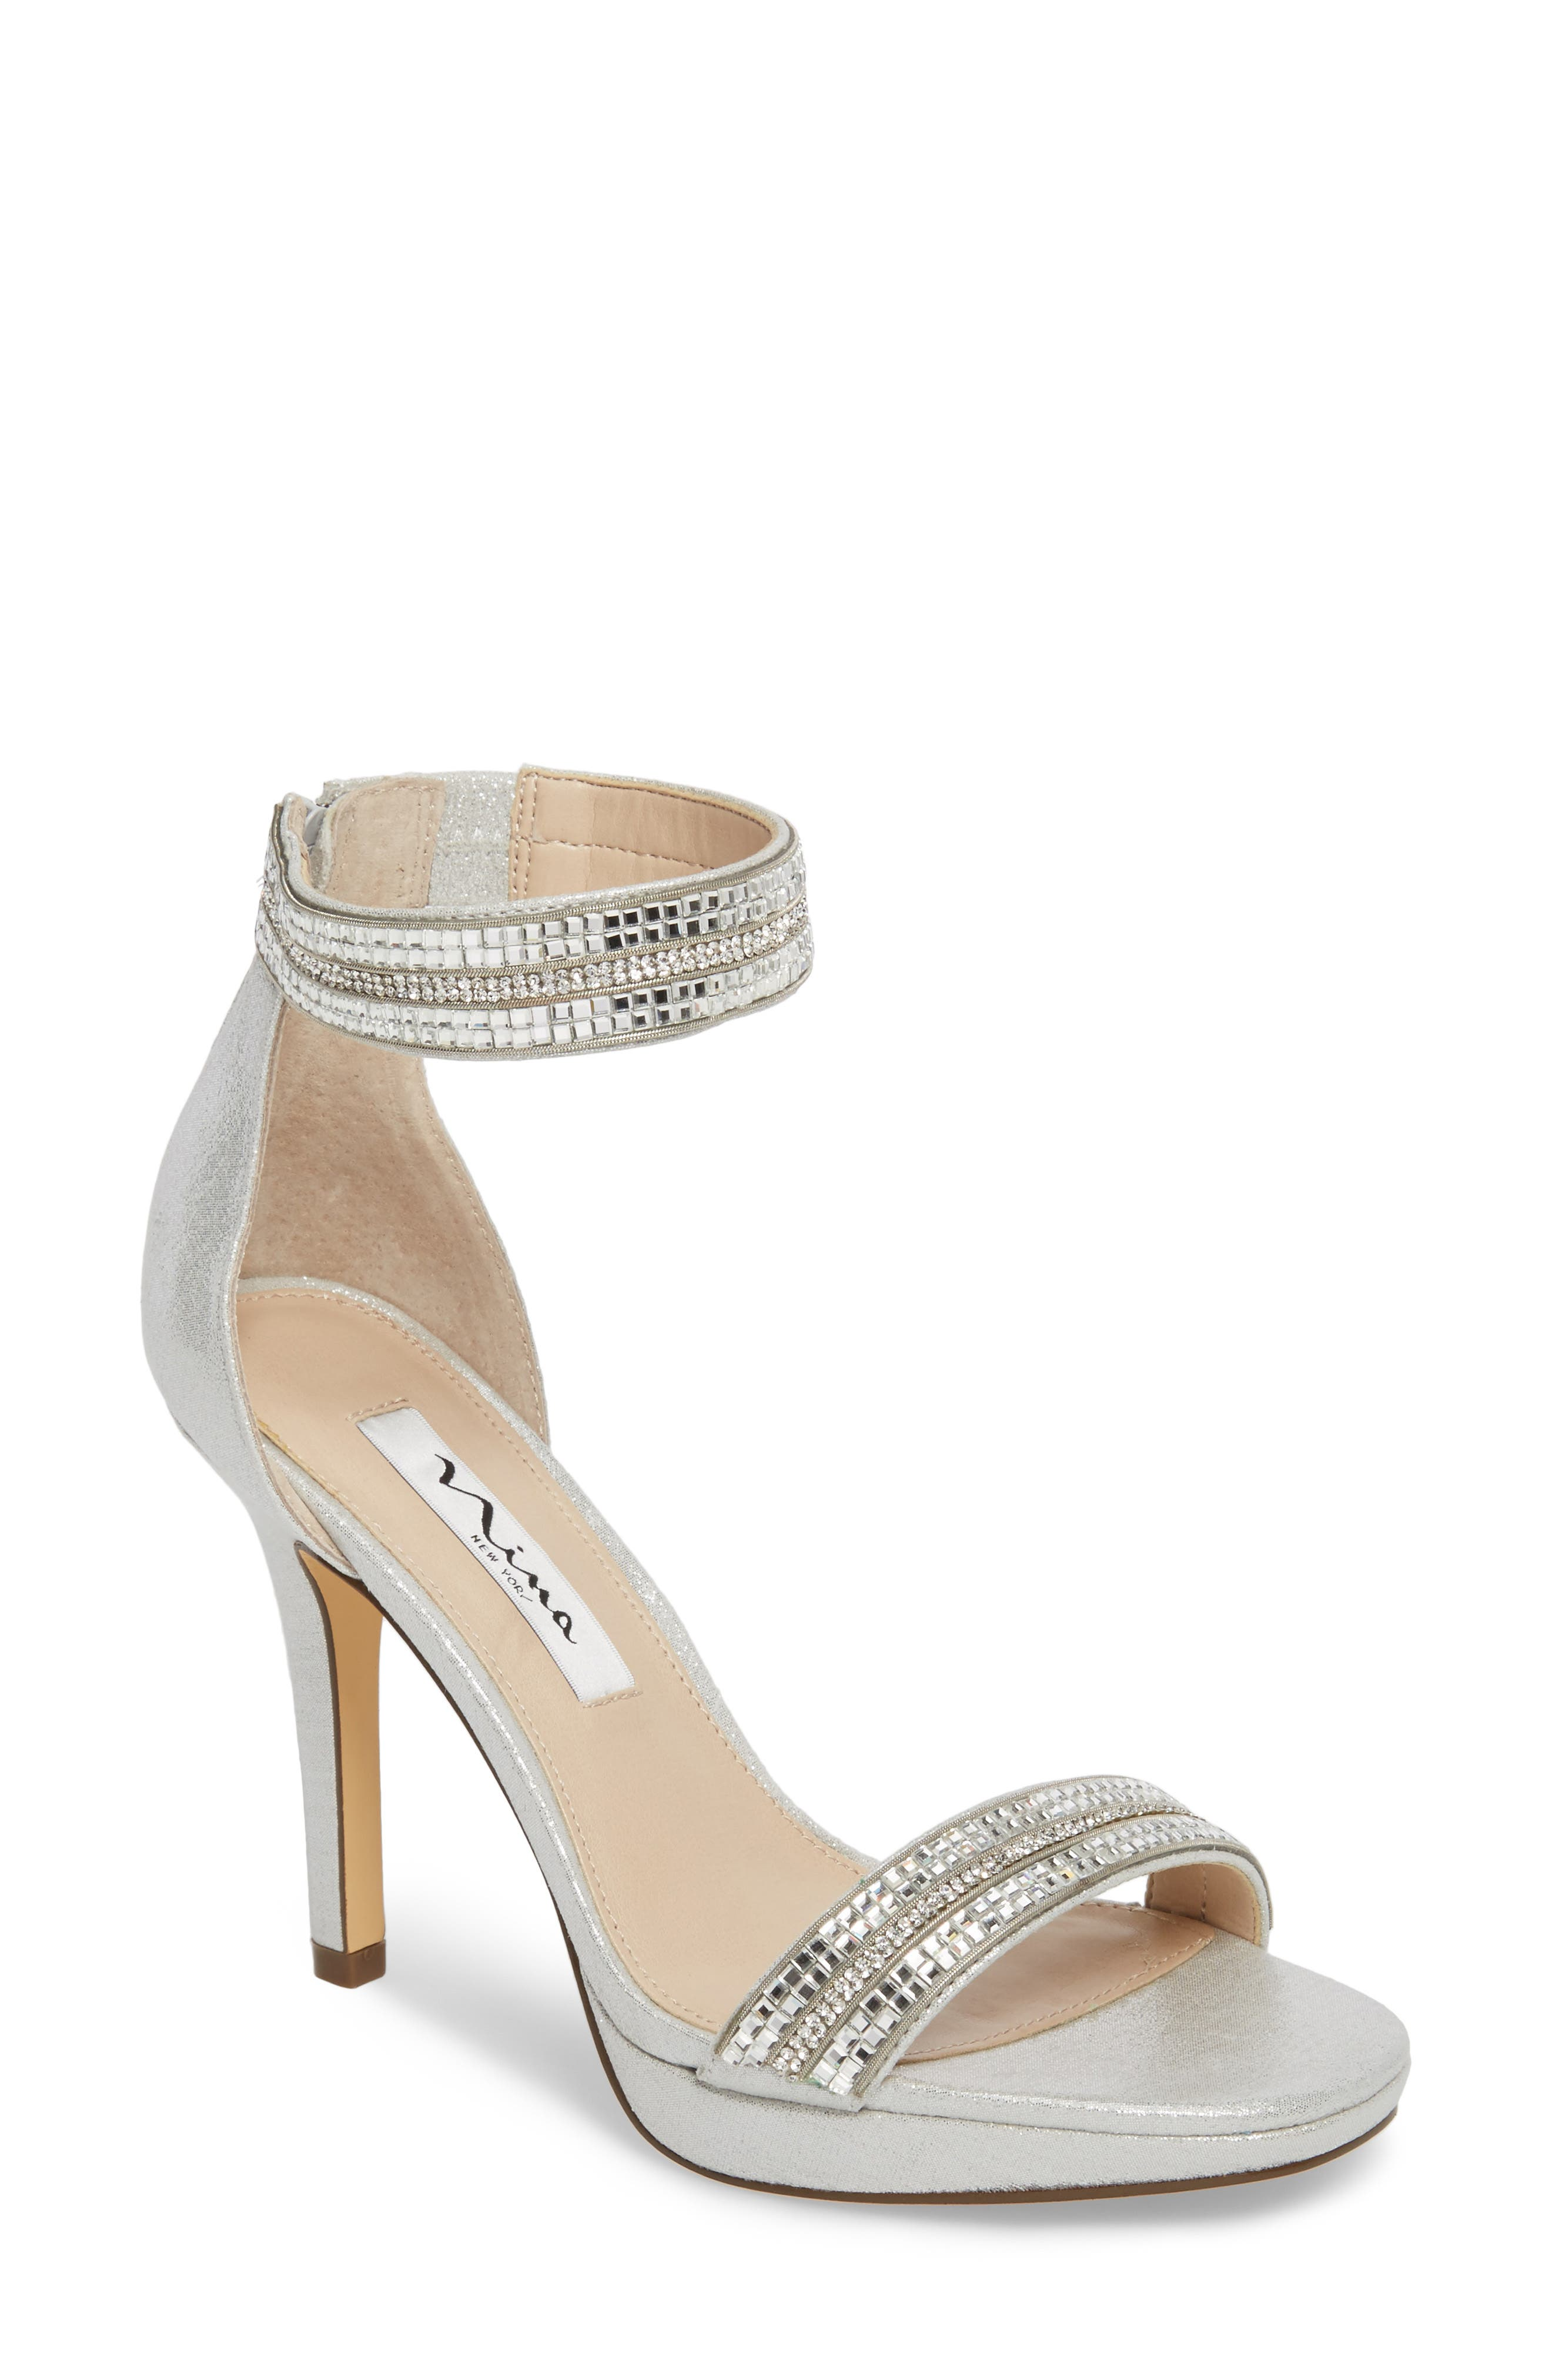 Alternate Image 1 Selected - Nina Aubrie Ankle Strap Sandal (Women)